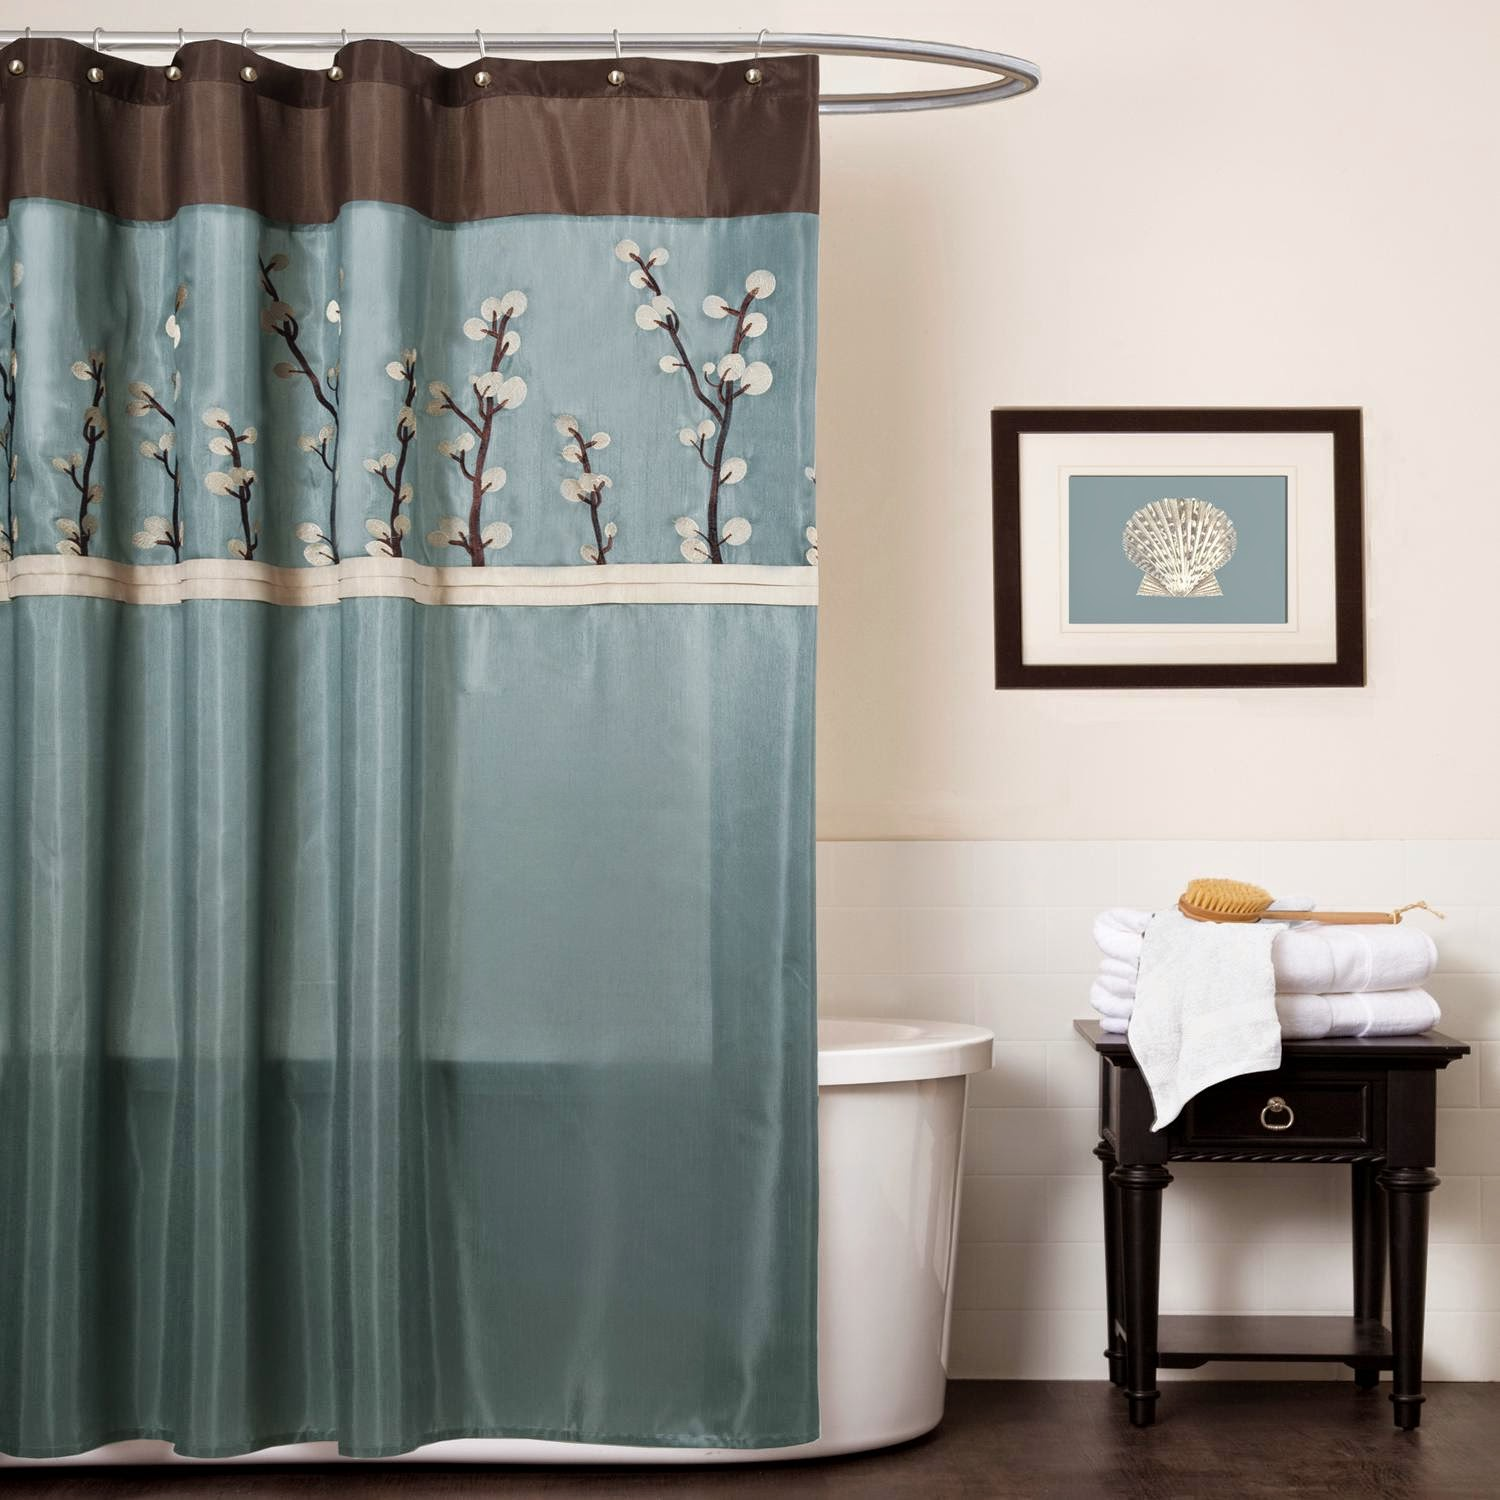 chocolate brown curtains: best combination with different colors